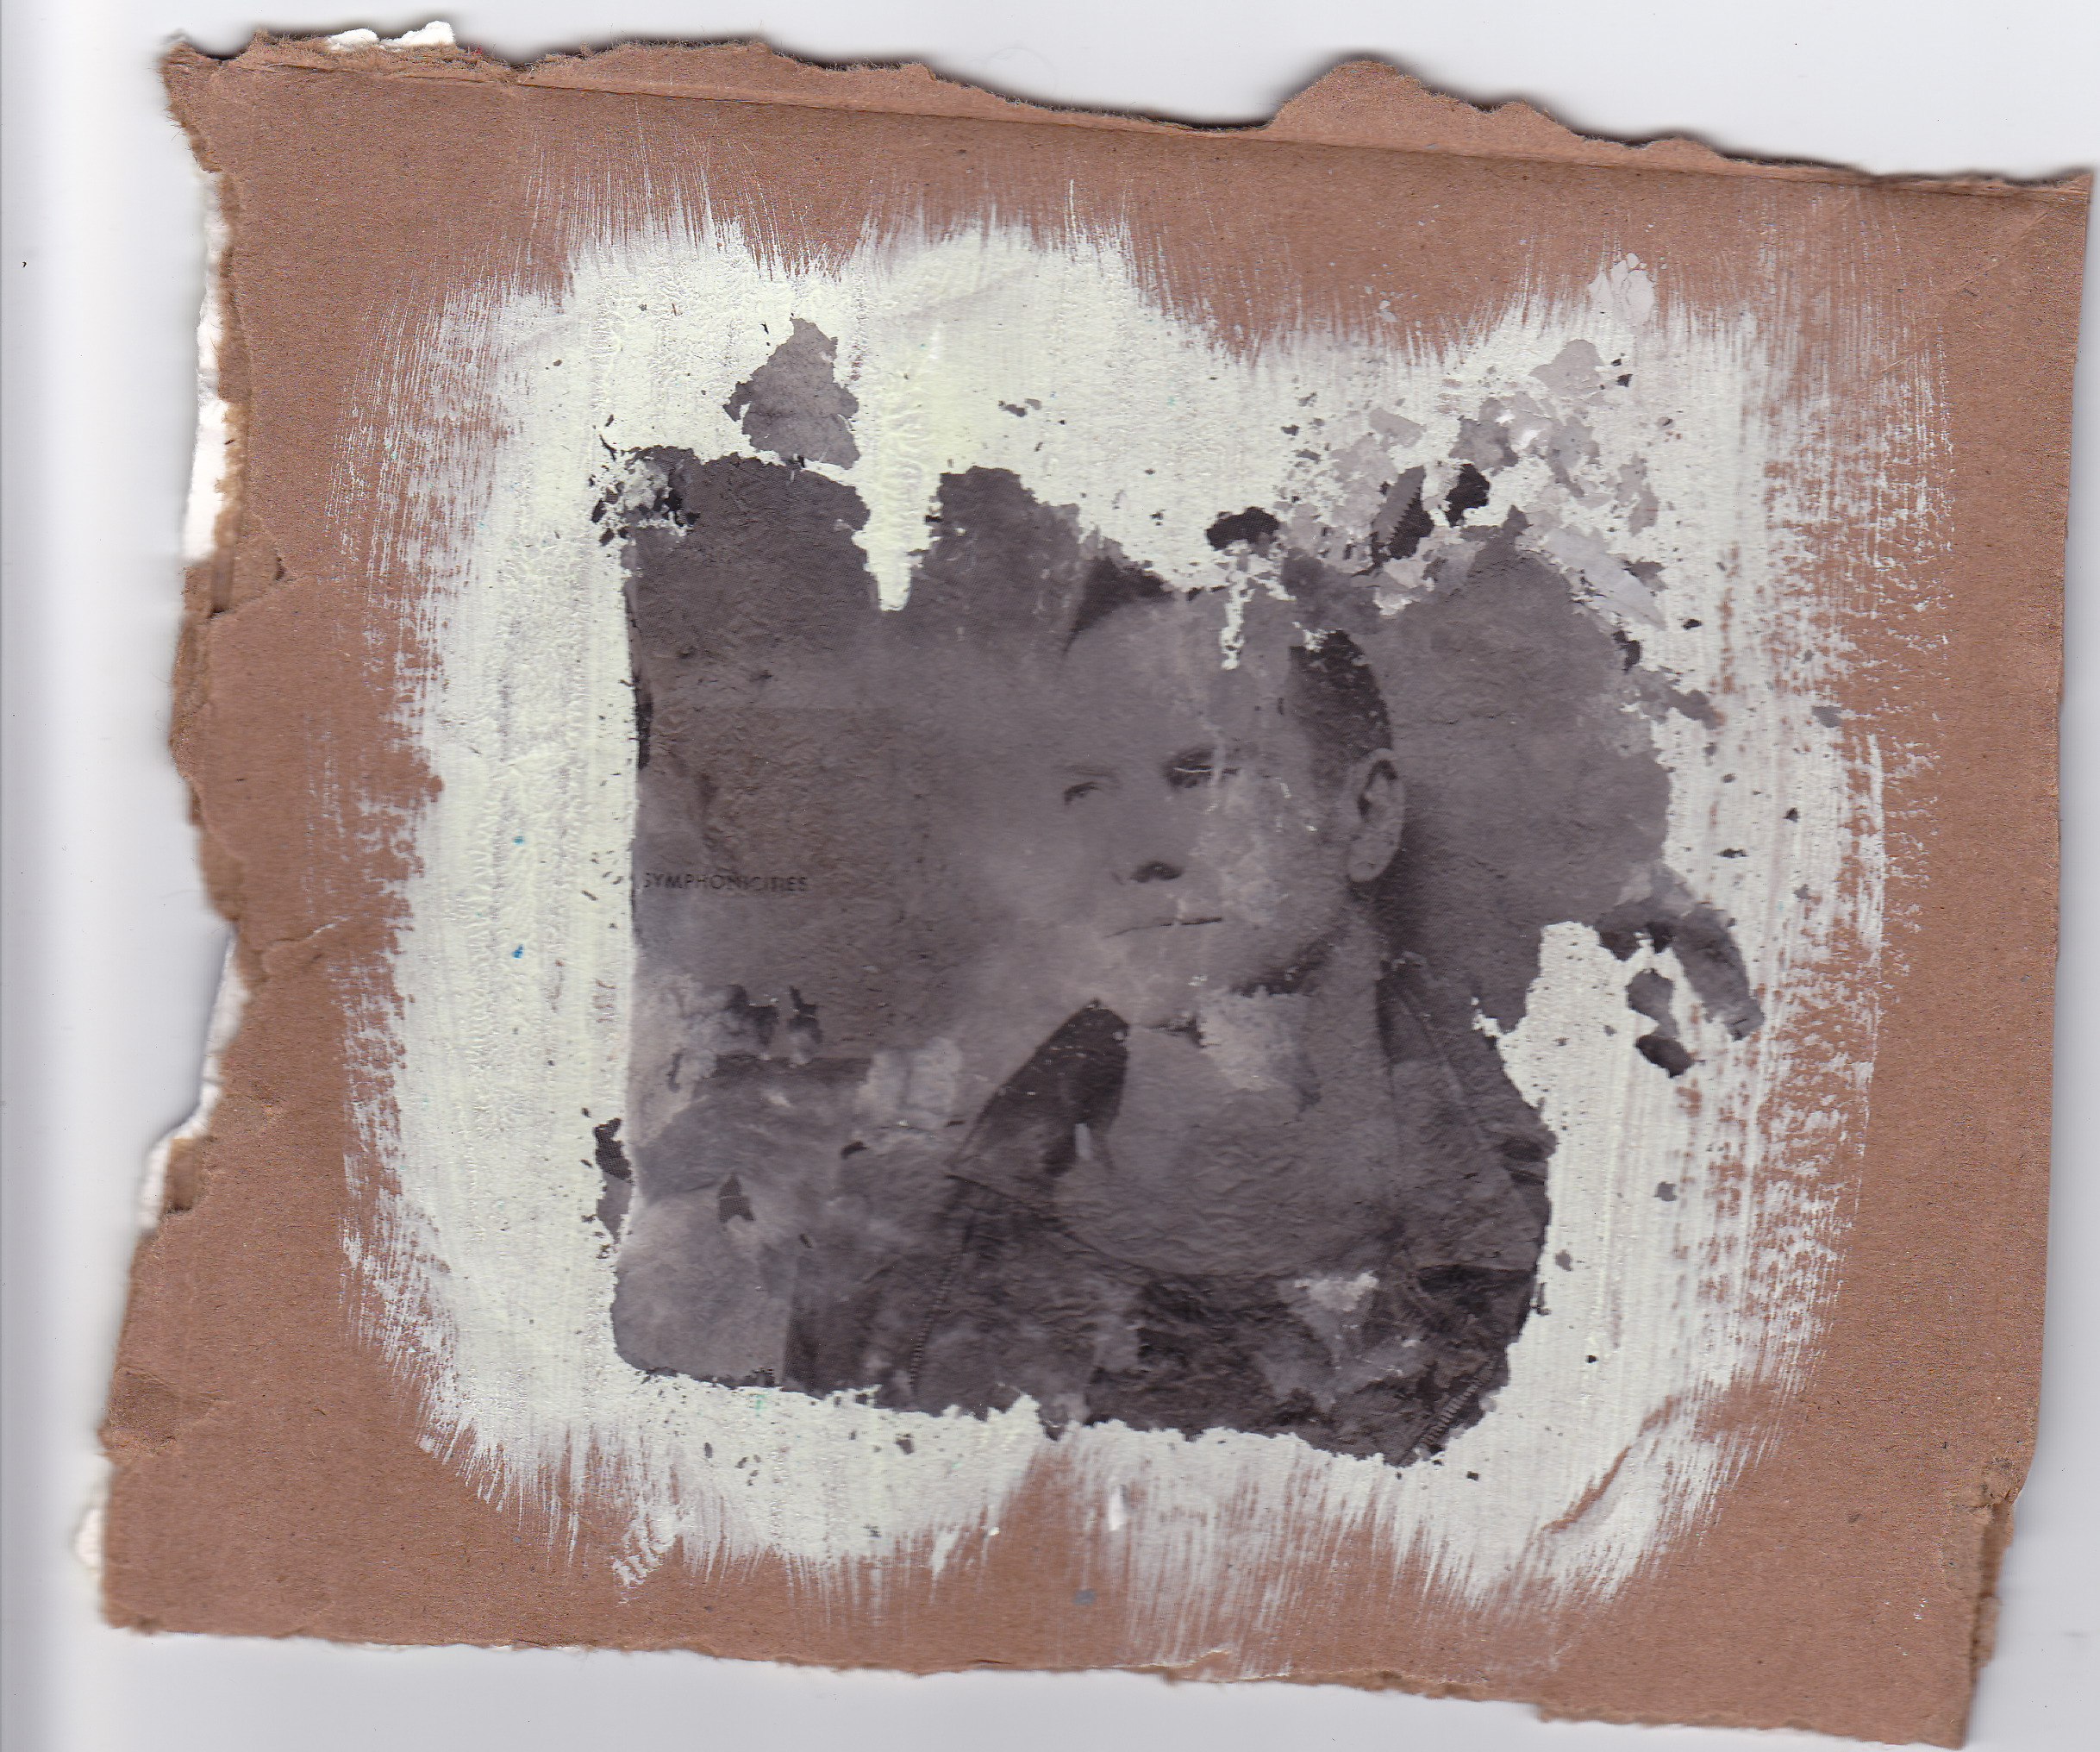 Sting, 2013 ash and gesso on cardboard